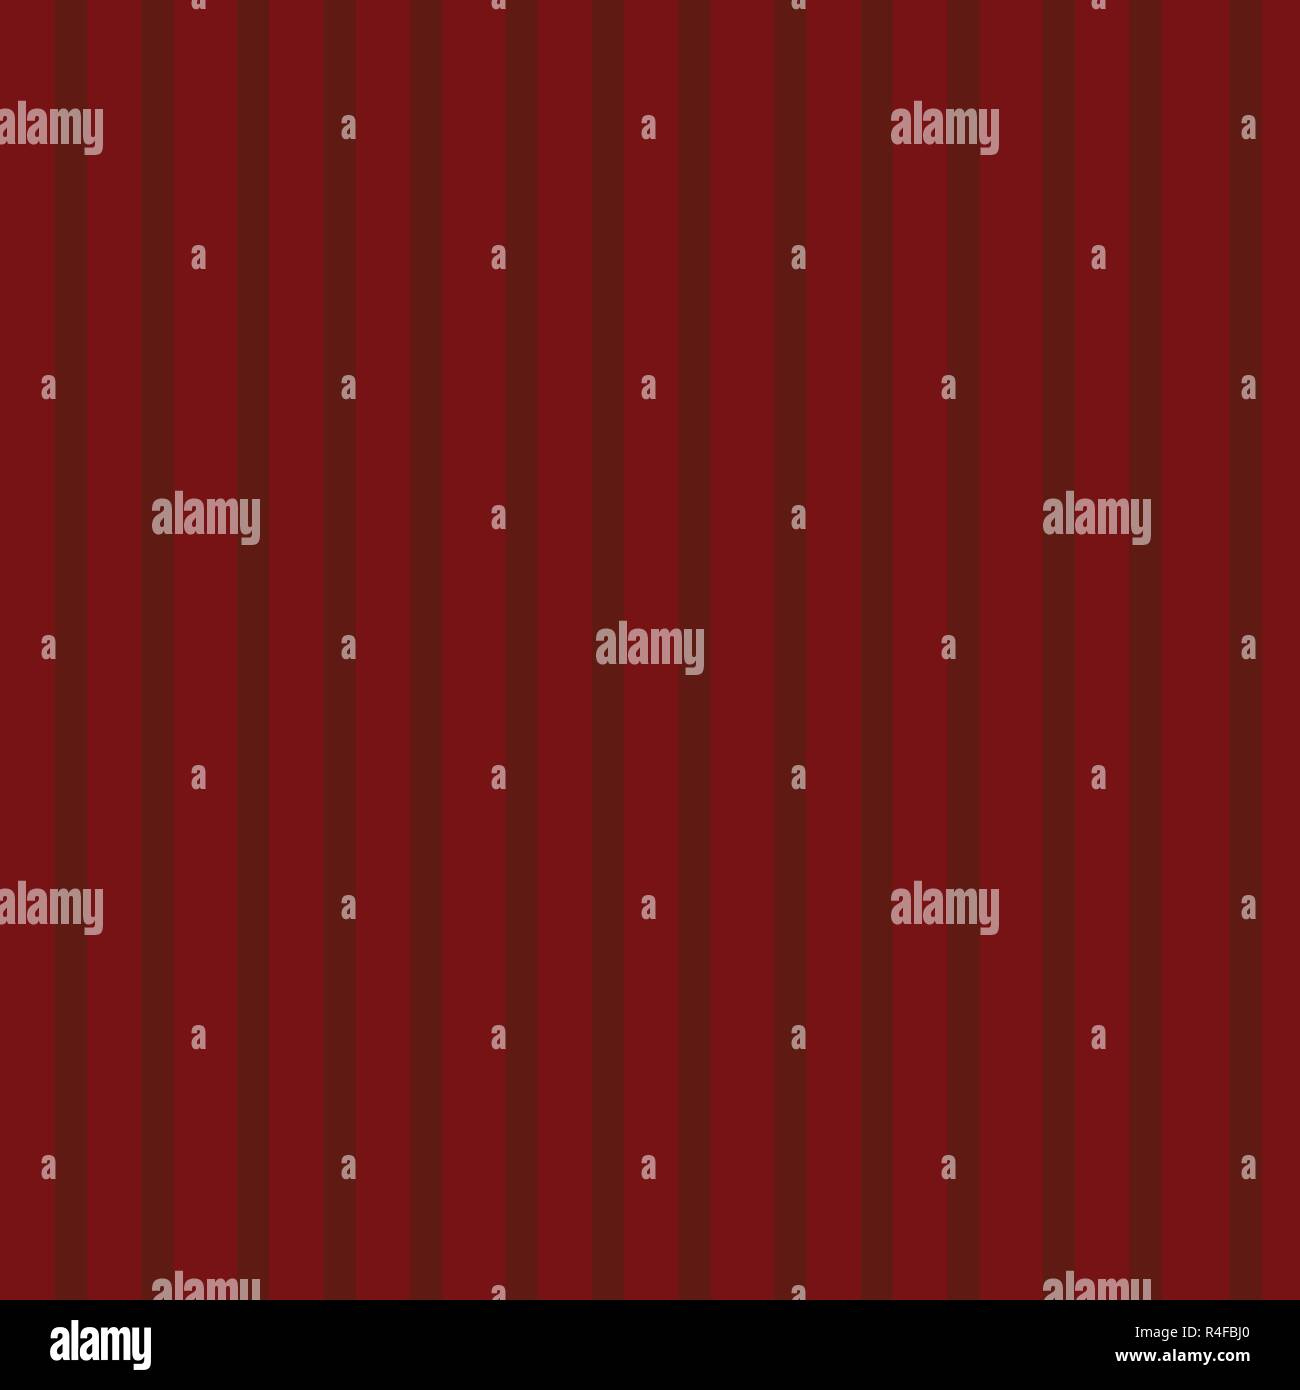 Design business Empty template isolated Minimalist graphic layout template for advertising . Seamless Vertical Straight Lines Two Tone Stripes in Blan - Stock Vector